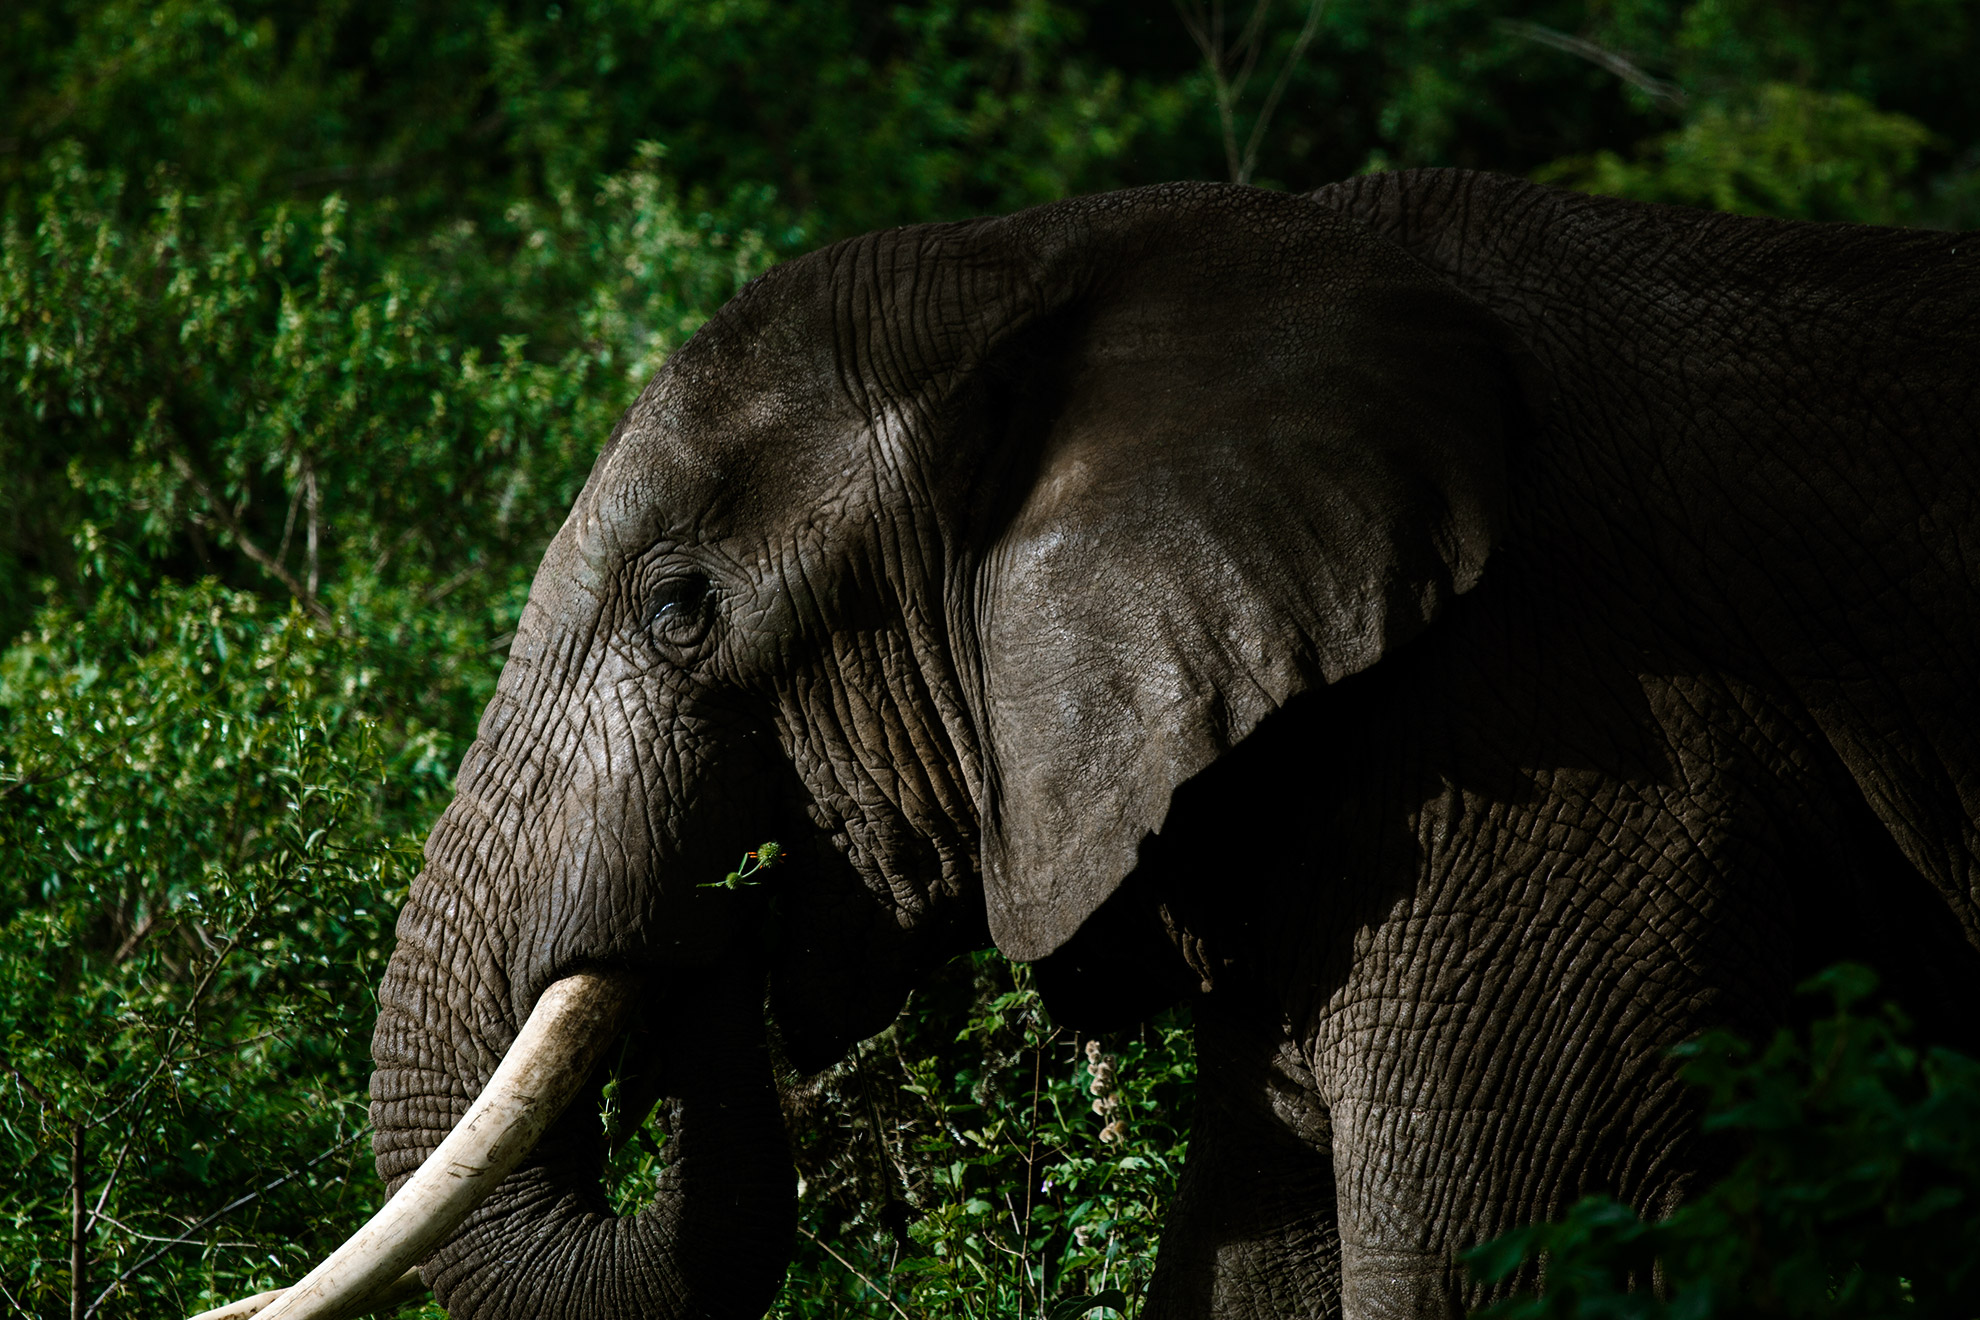 Close-up shot of an elephant